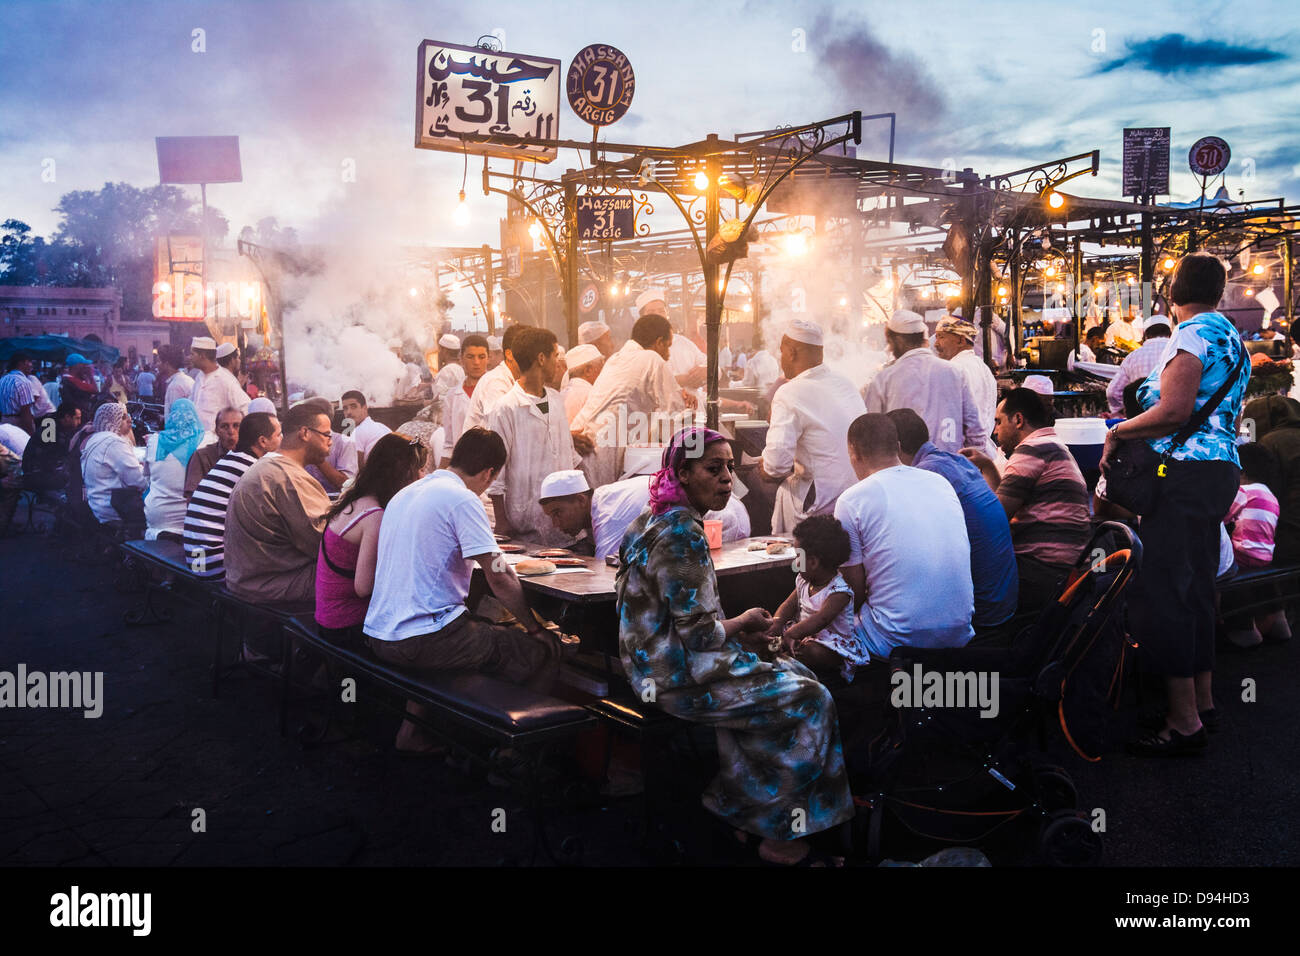 Djemaa el Fna square. People dining at the food stalls at dusk. Marrakesh, Morocco - Stock Image